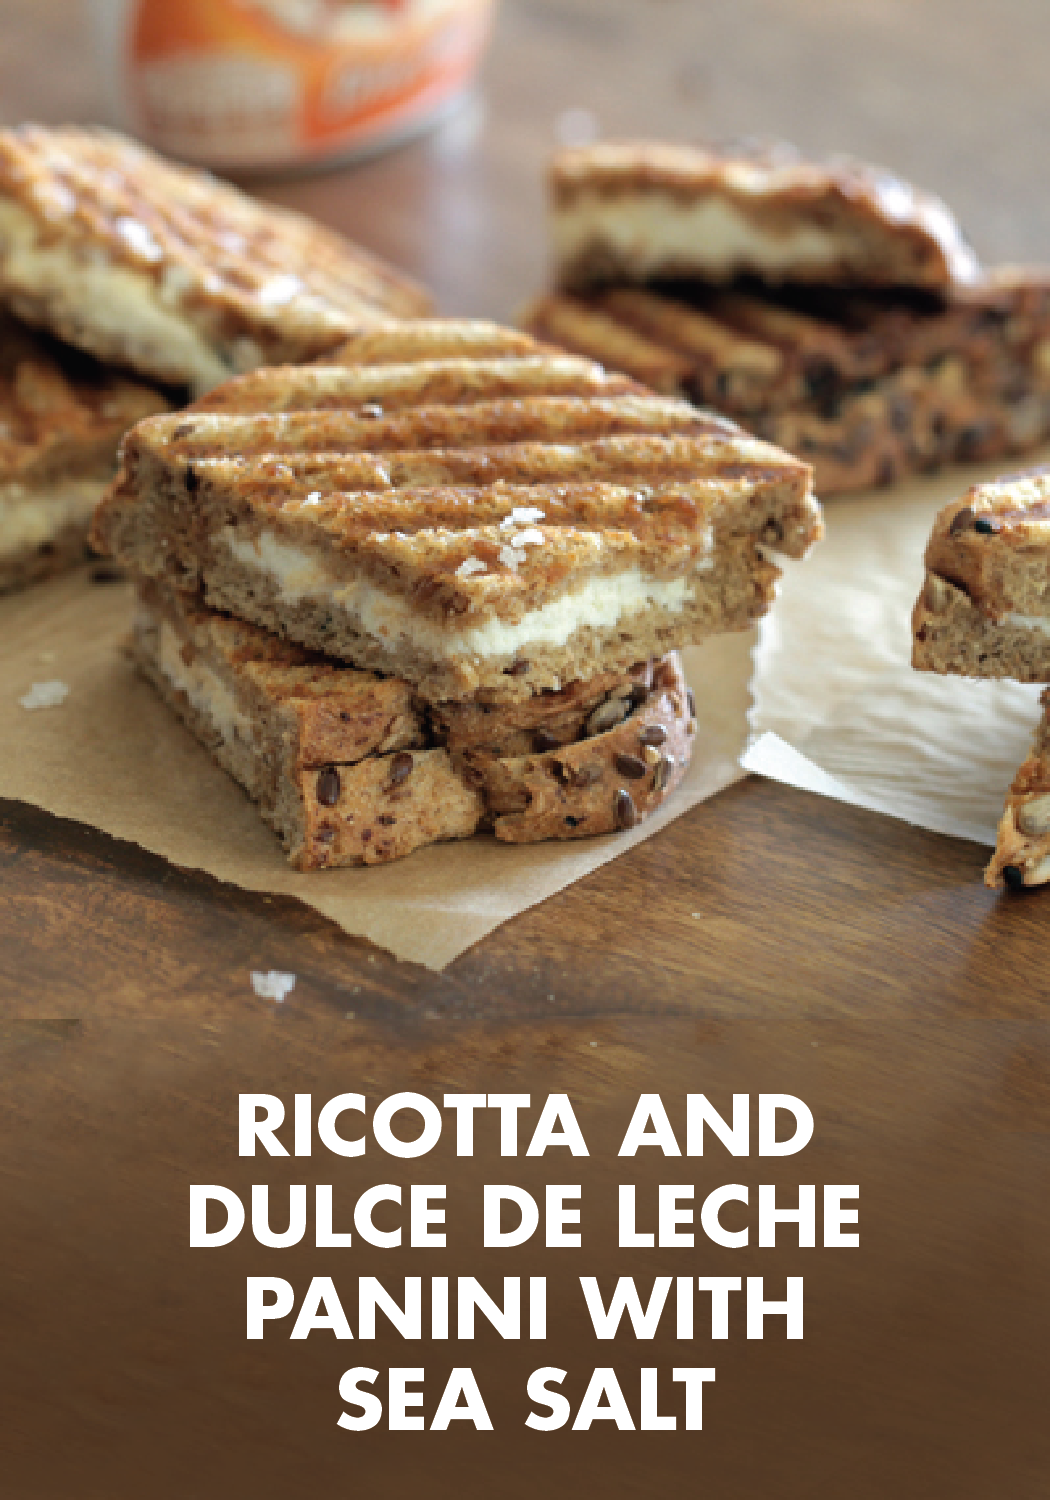 Photo of Ricotta and Dulce de Leche Panini with Sea Salt